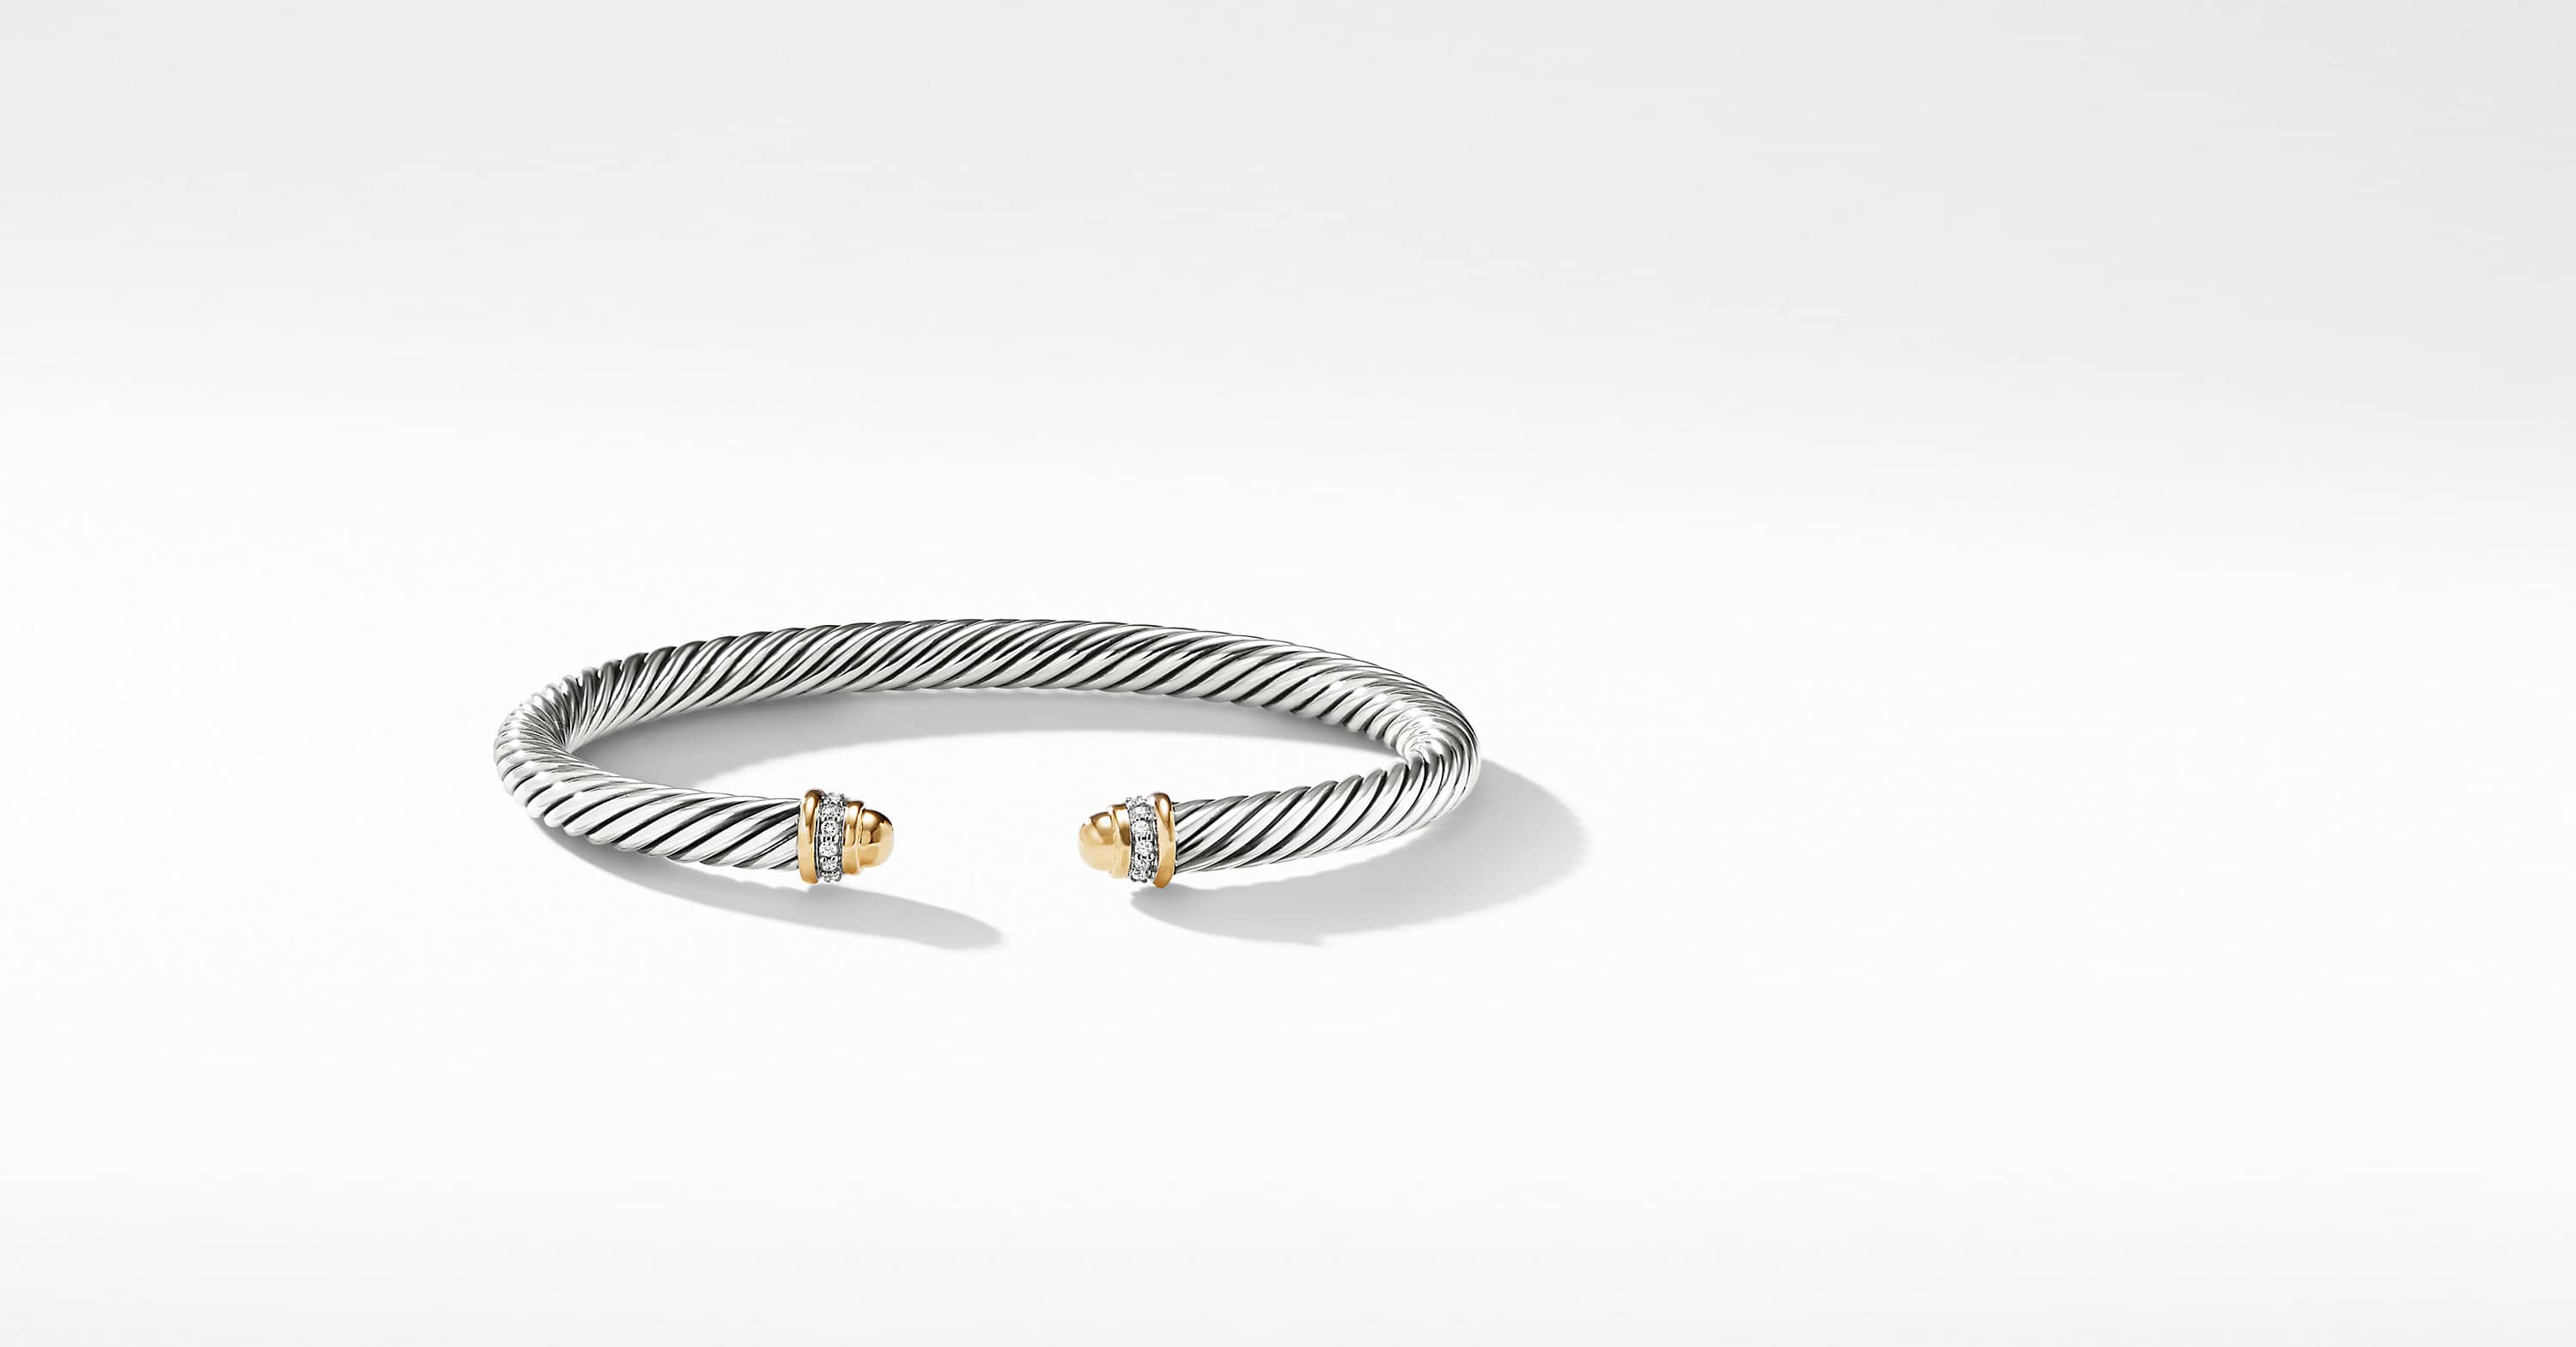 Cable Classic Collection Bracelet with 18K Yellow Gold and Diamonds, 5mm